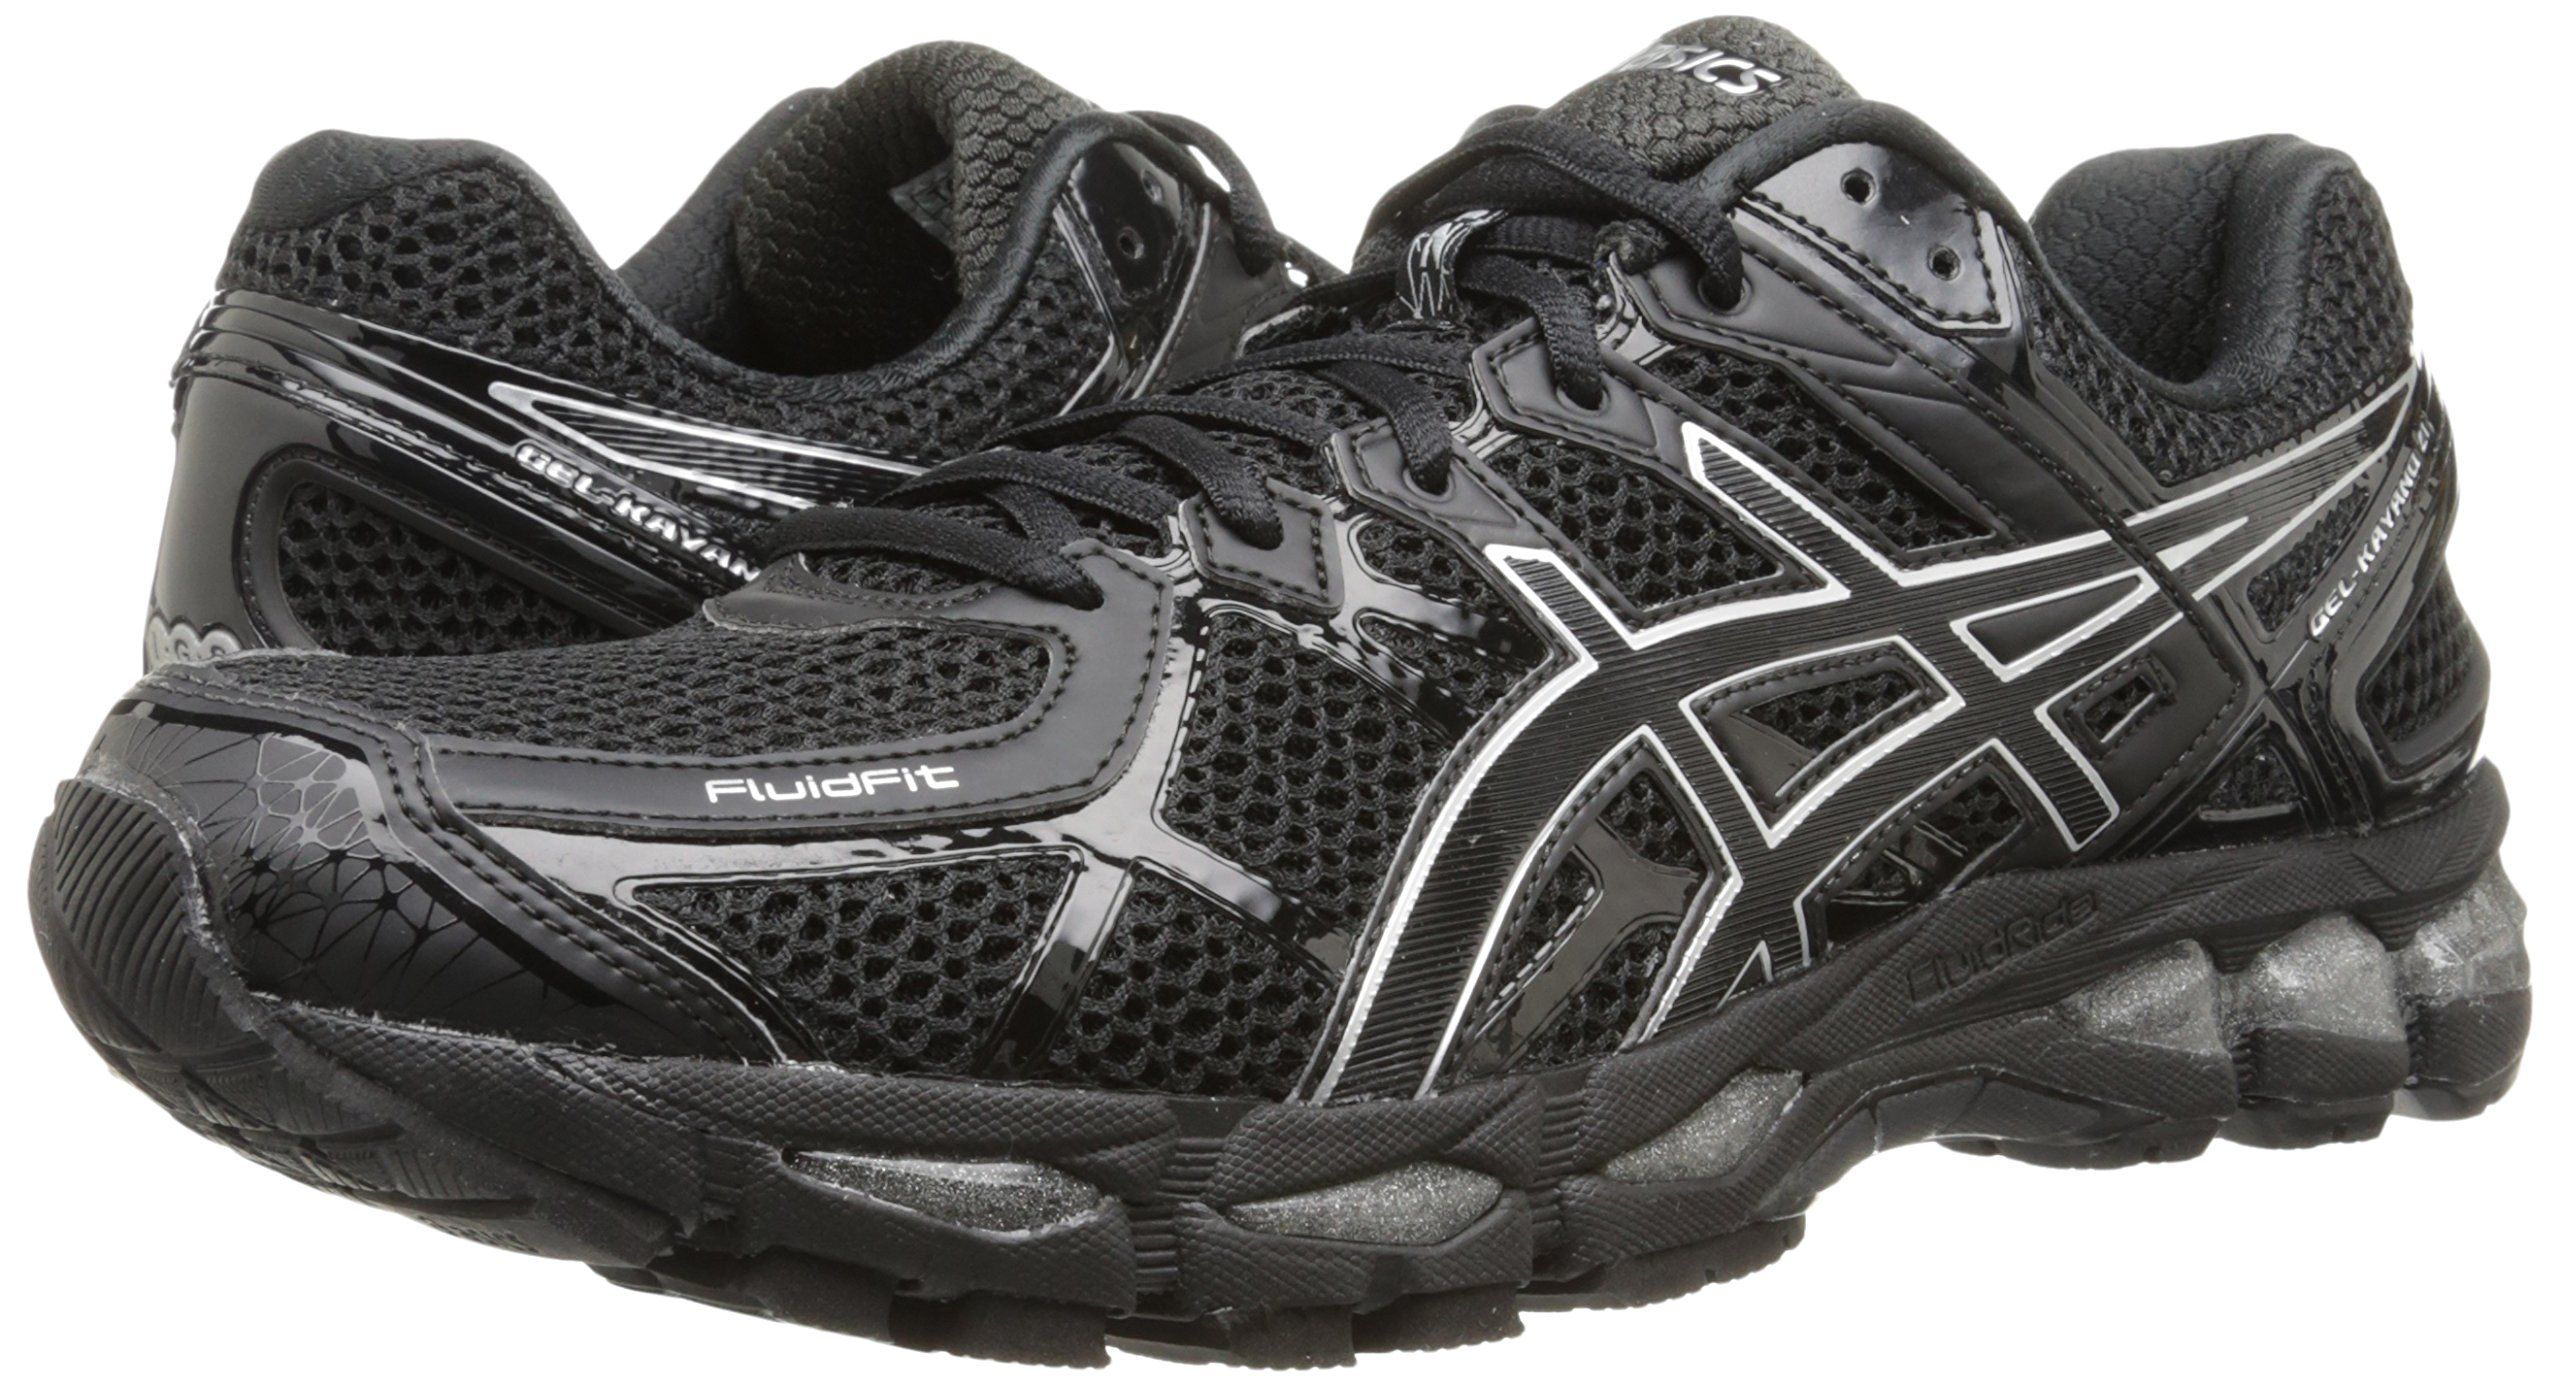 designer fashion 4638f 32663 Amazon.com  ASICS Men s Gel Kayano 21 Running Shoe   Color  Onyx   Black    Silver